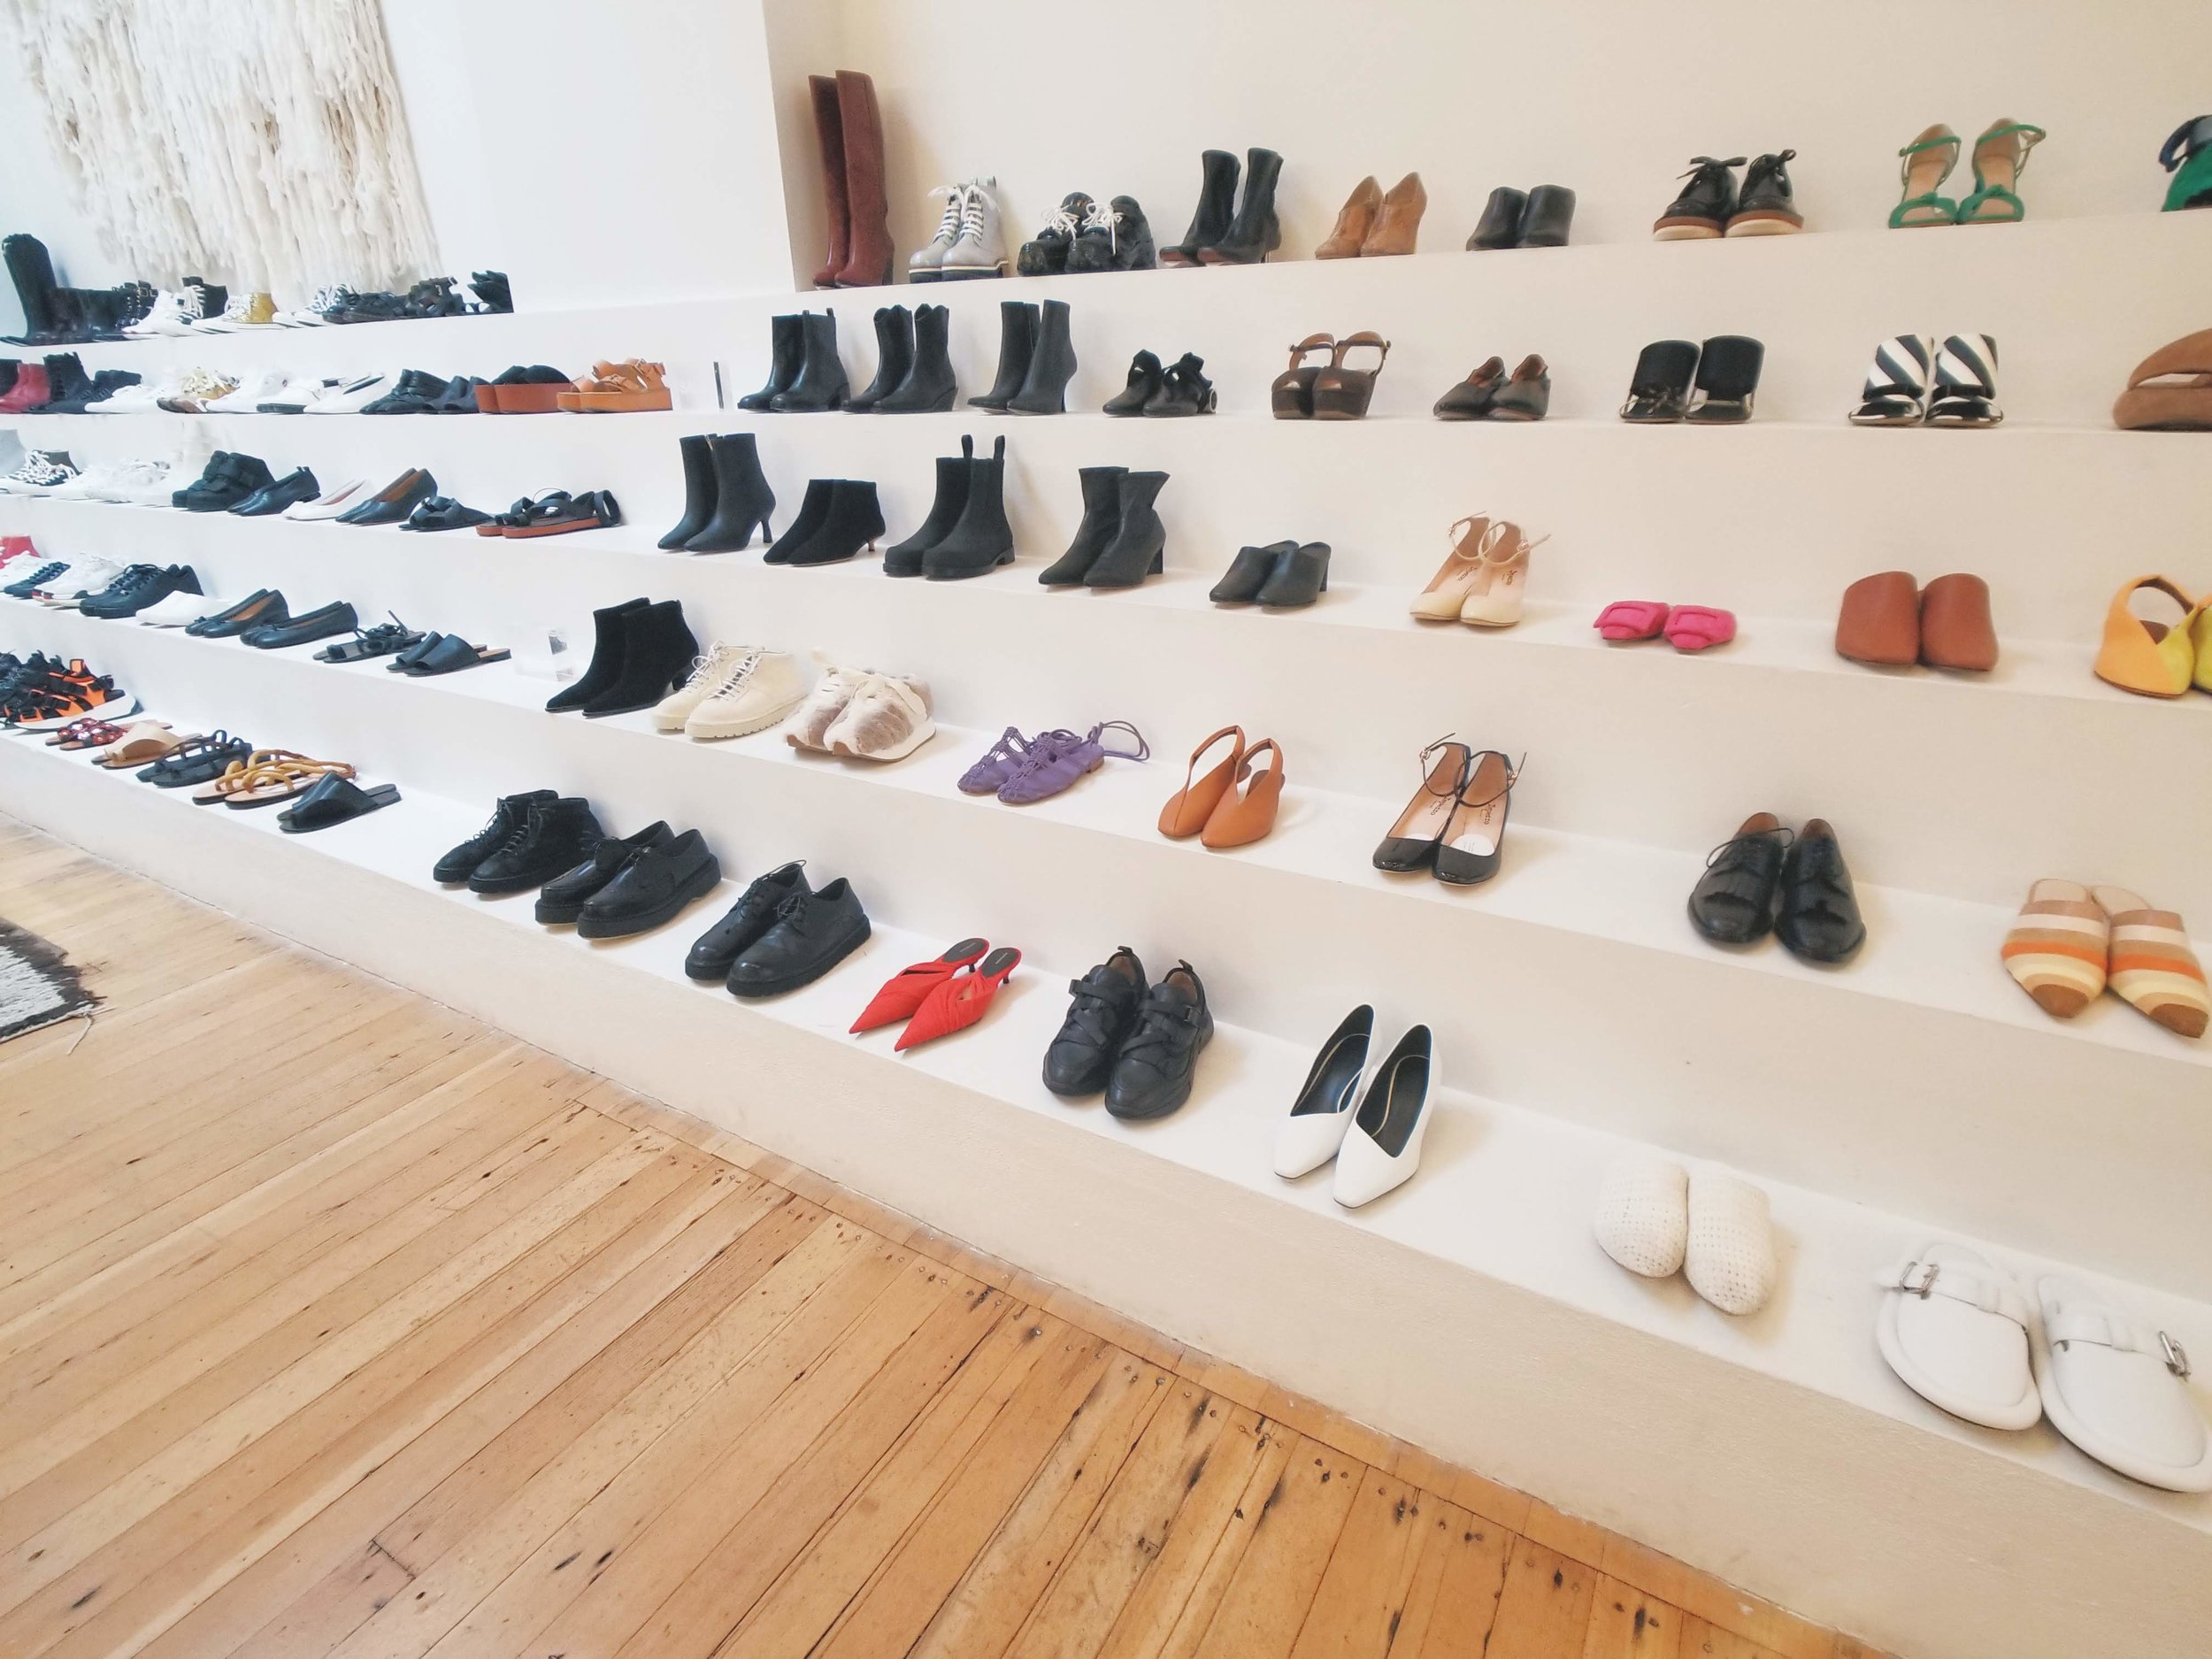 Shoe-spiration at Totokaelo. So many gorgeous and quirky pairs to choose from. I loved a pair of simple Robert Clergerie black slides.